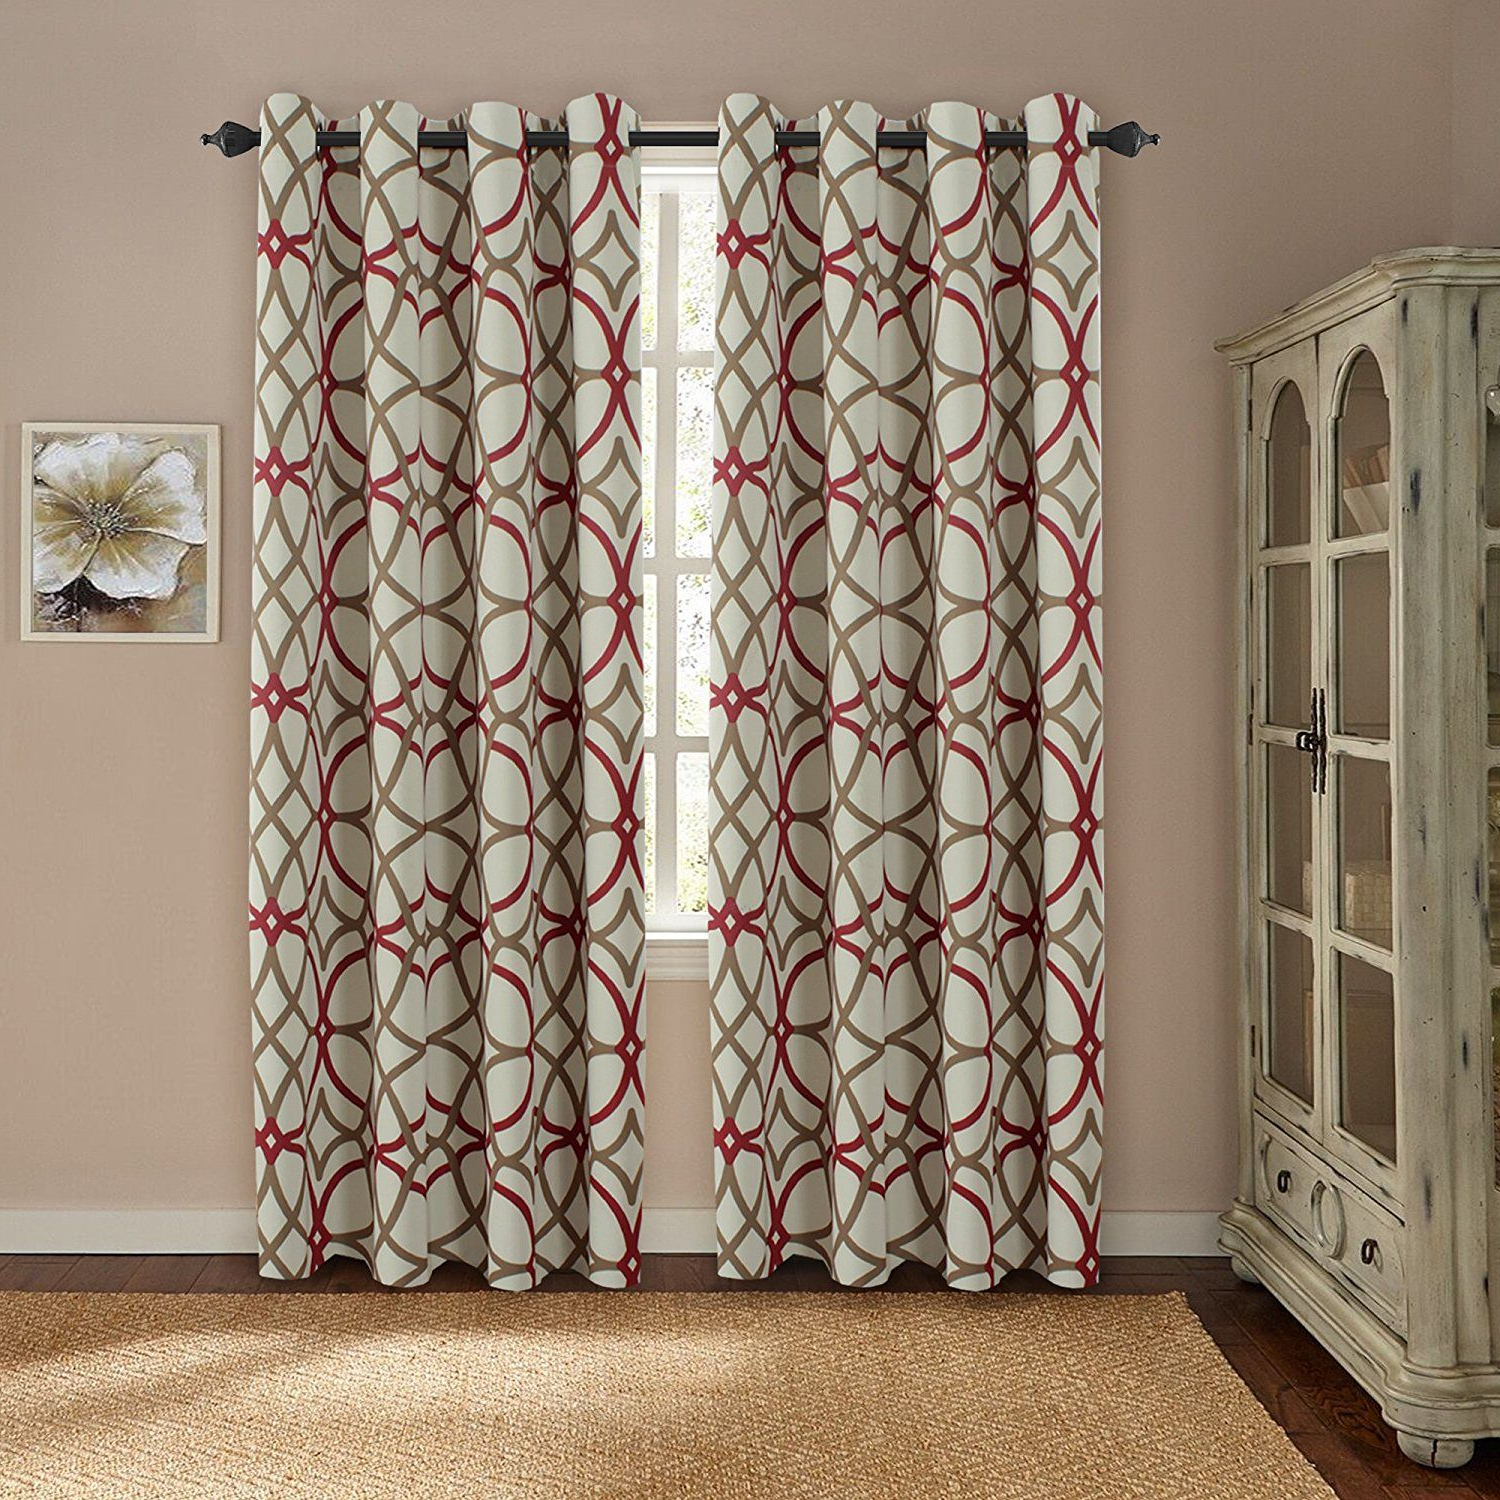 Fashionable Gray Barn Dogwood Floral Curtain Panel Pairs With Regard To Amazon: H.versailtex Thermal Insulated Blackout Window (Gallery 17 of 20)